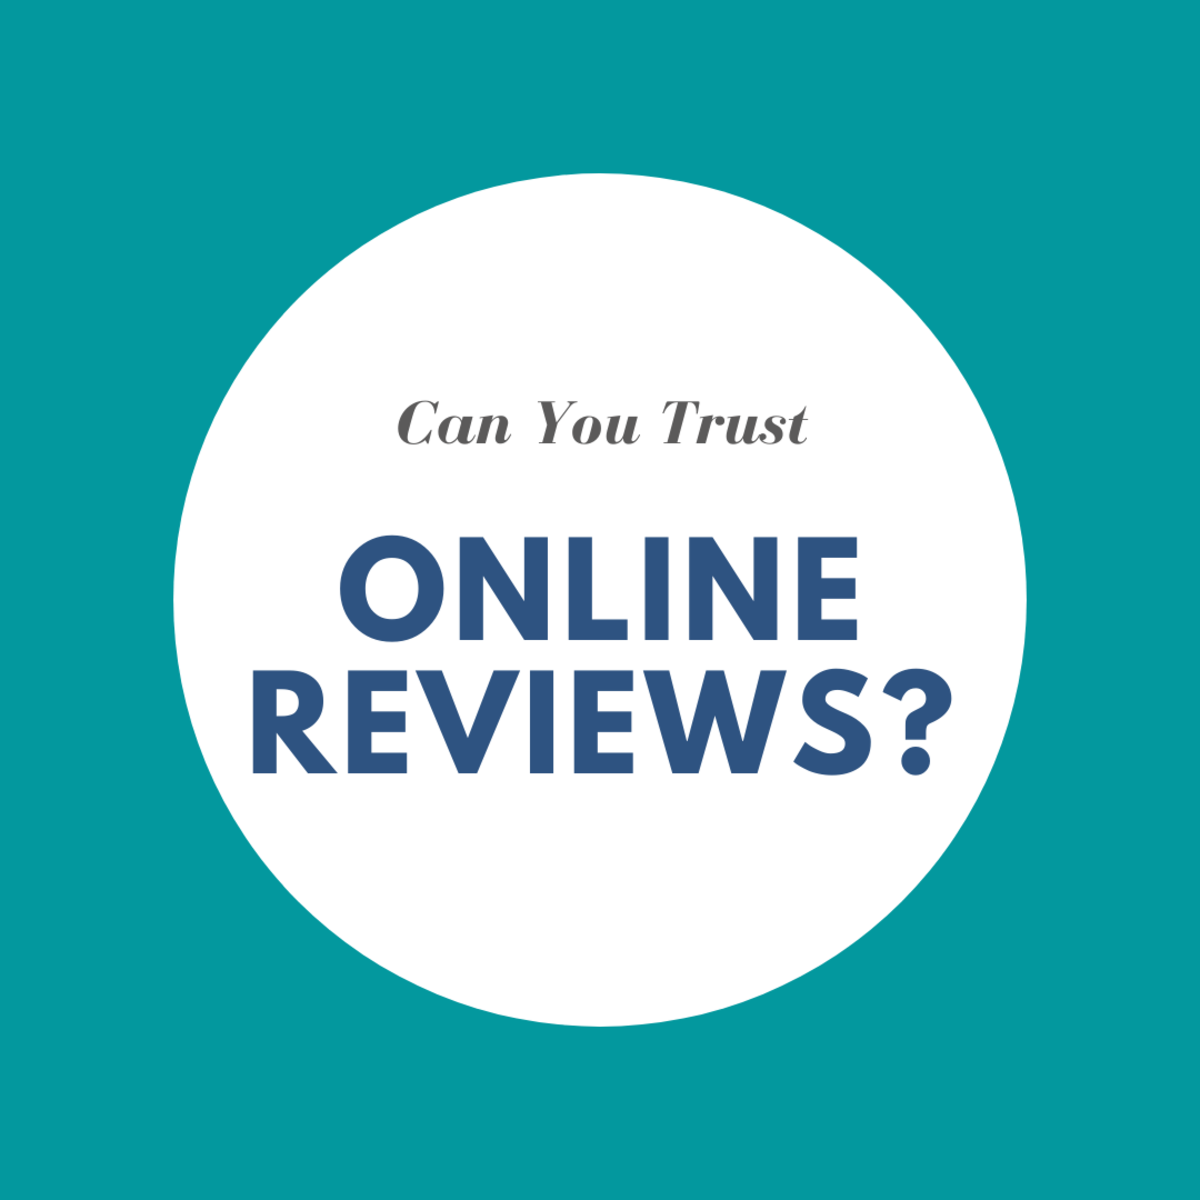 Find out if that Yelp review is worth trusting.